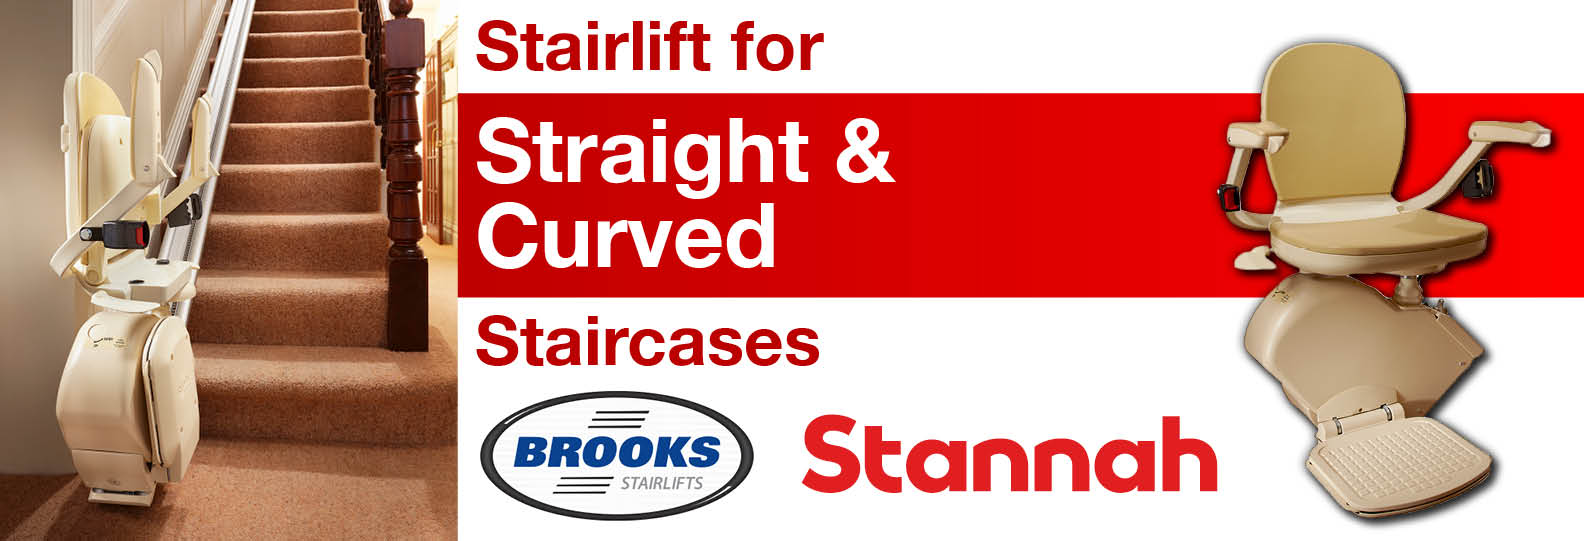 Stair lifts for straight and curved staircases